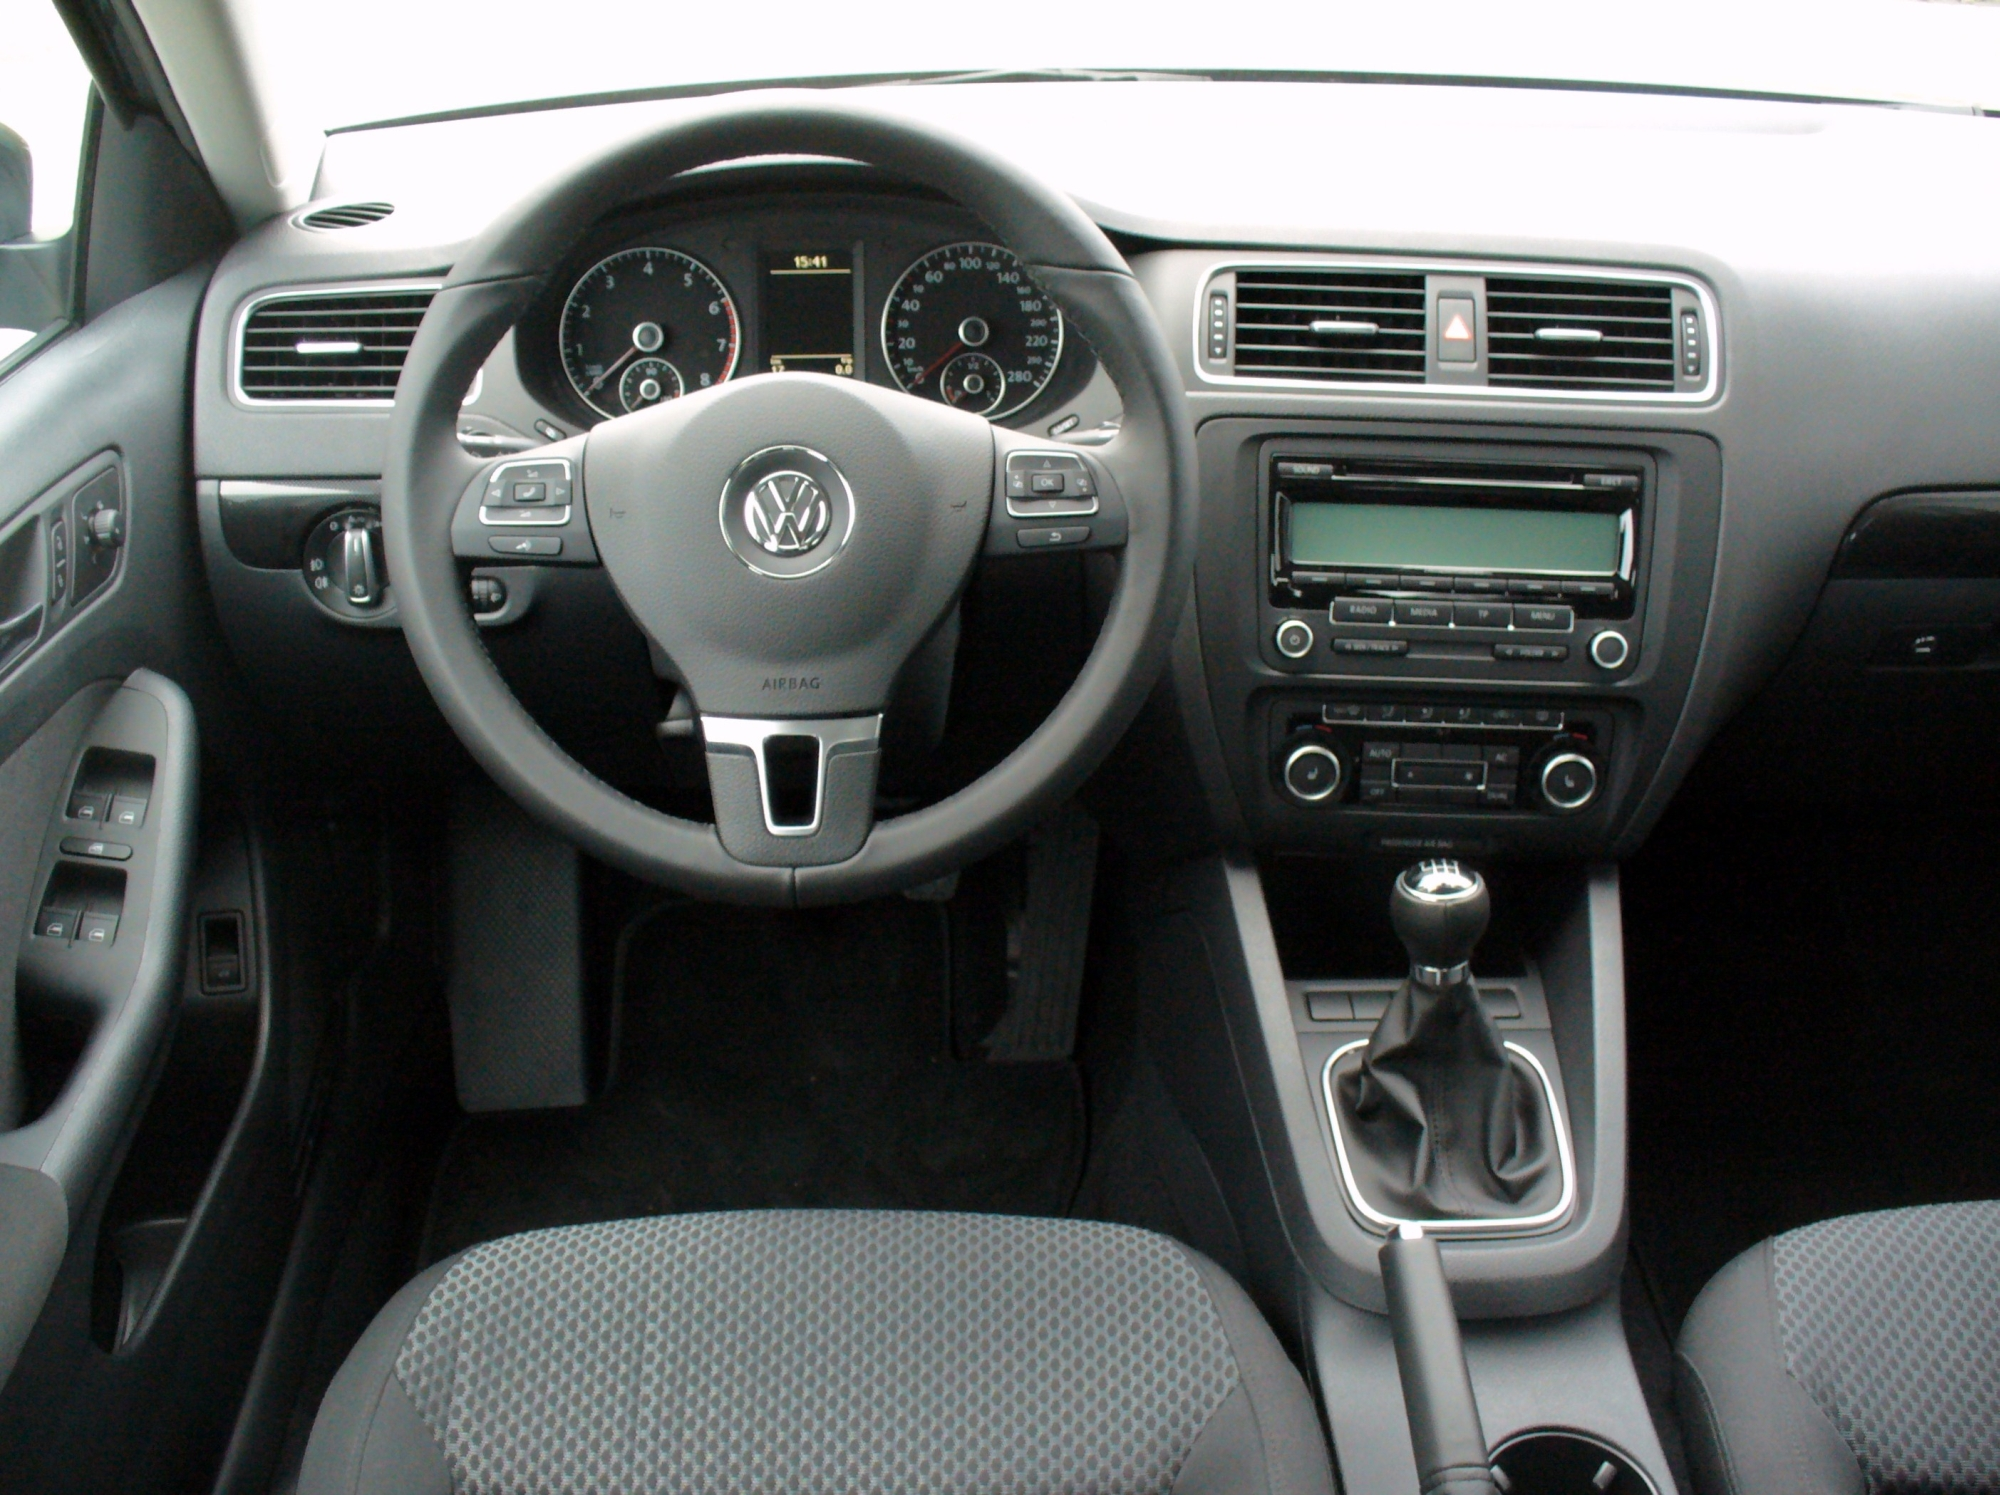 file vw jetta vi 1 2 tsi comfortline platinumgrey interieur jpg wikimedia commons. Black Bedroom Furniture Sets. Home Design Ideas